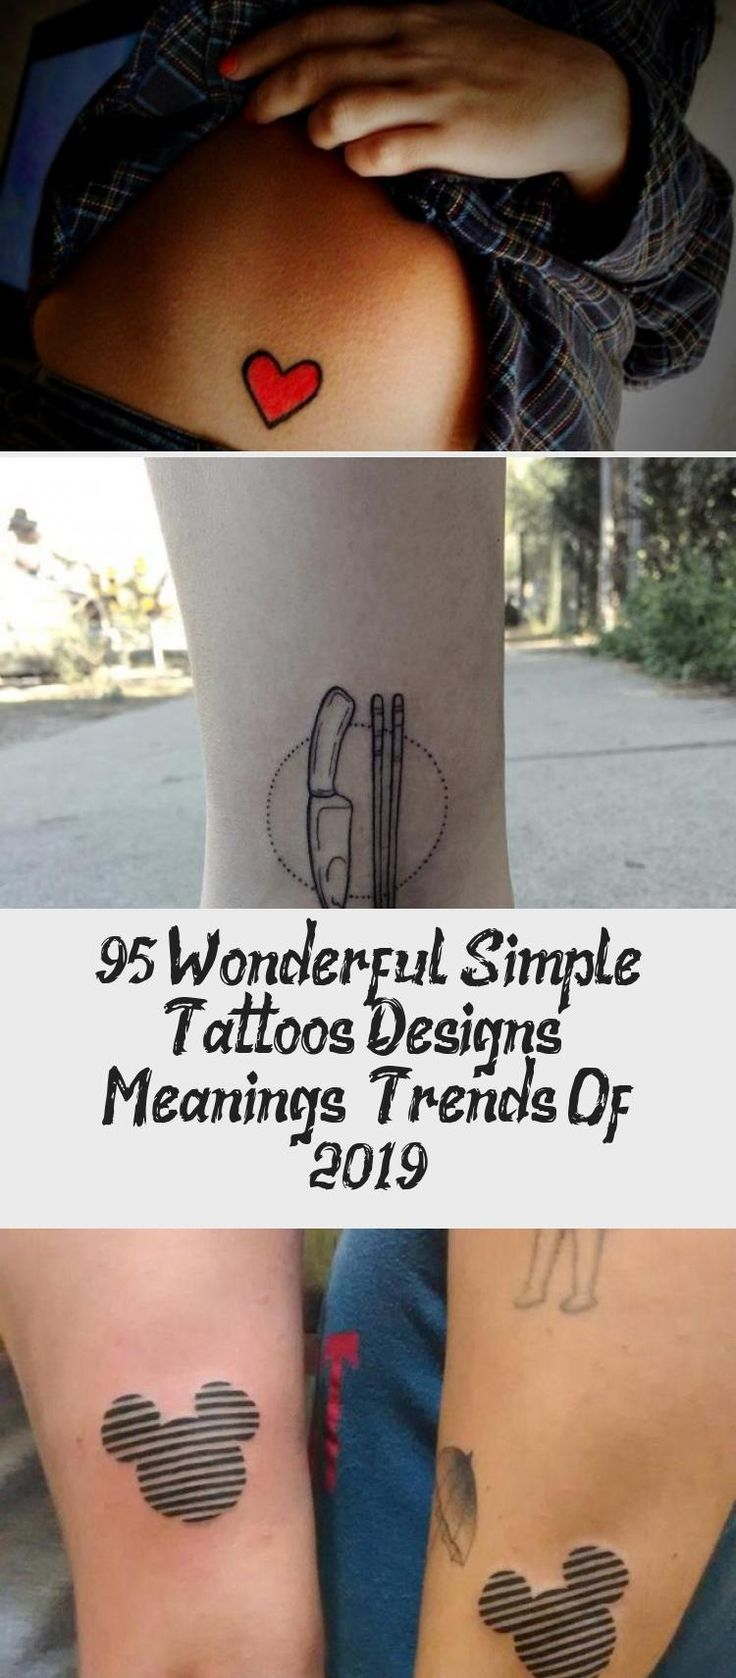 95+ Wonderful Simple Tattoos Designs & Meanings — Trends